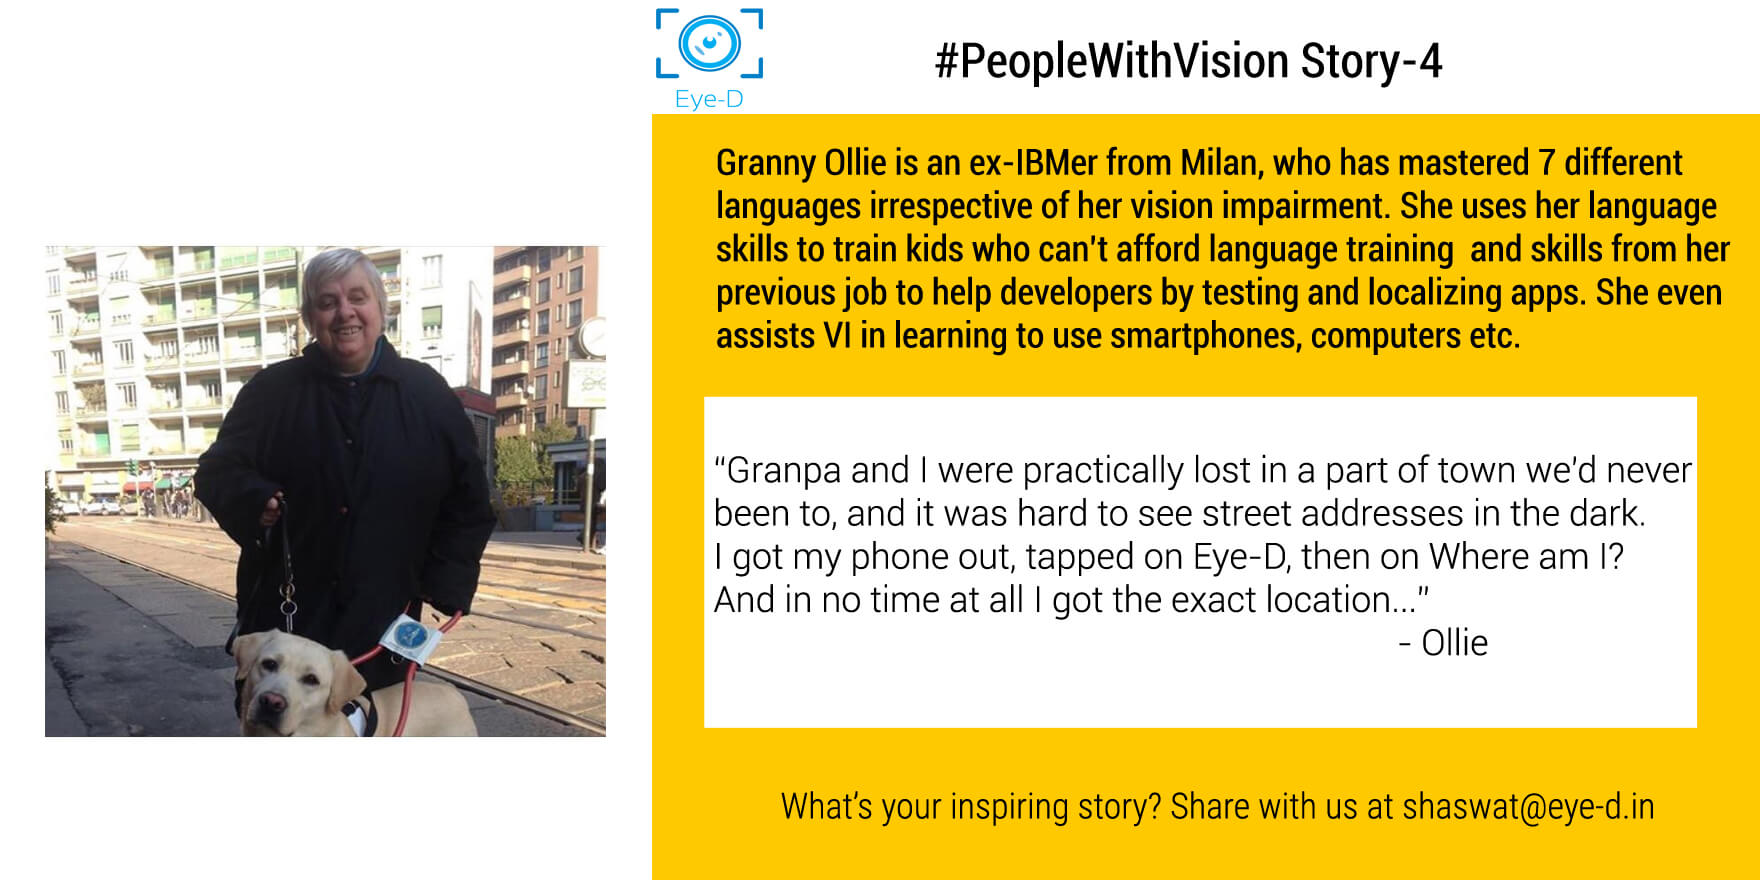 Picture shows Eye-D App user Ollie which mentions how Ollie manages to take care of her household chores while actively being involved in empowering people. The picture also show Ollie's experience with Eye-D app and how she used the Where Am I feature to know her location in a unfamiliar territory and then return home safely.